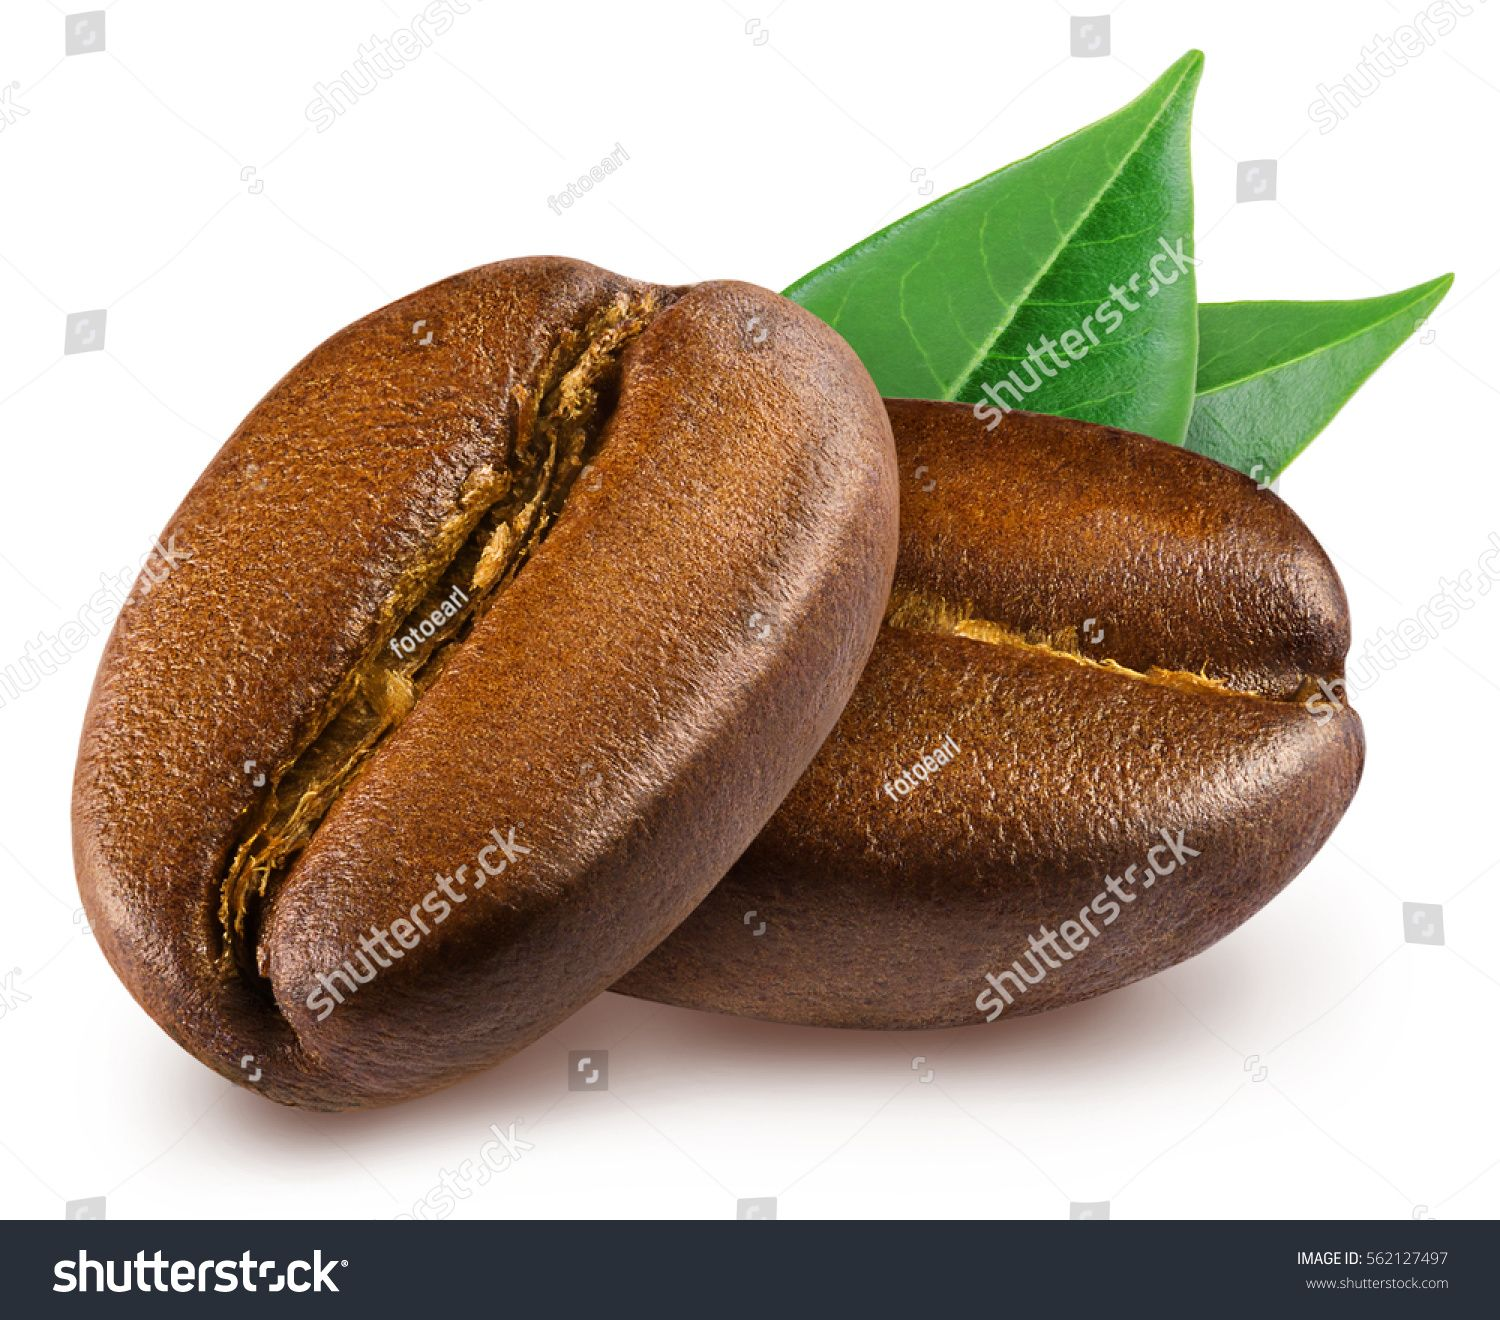 Two shiny fresh roasted coffee beans with leaves isolated